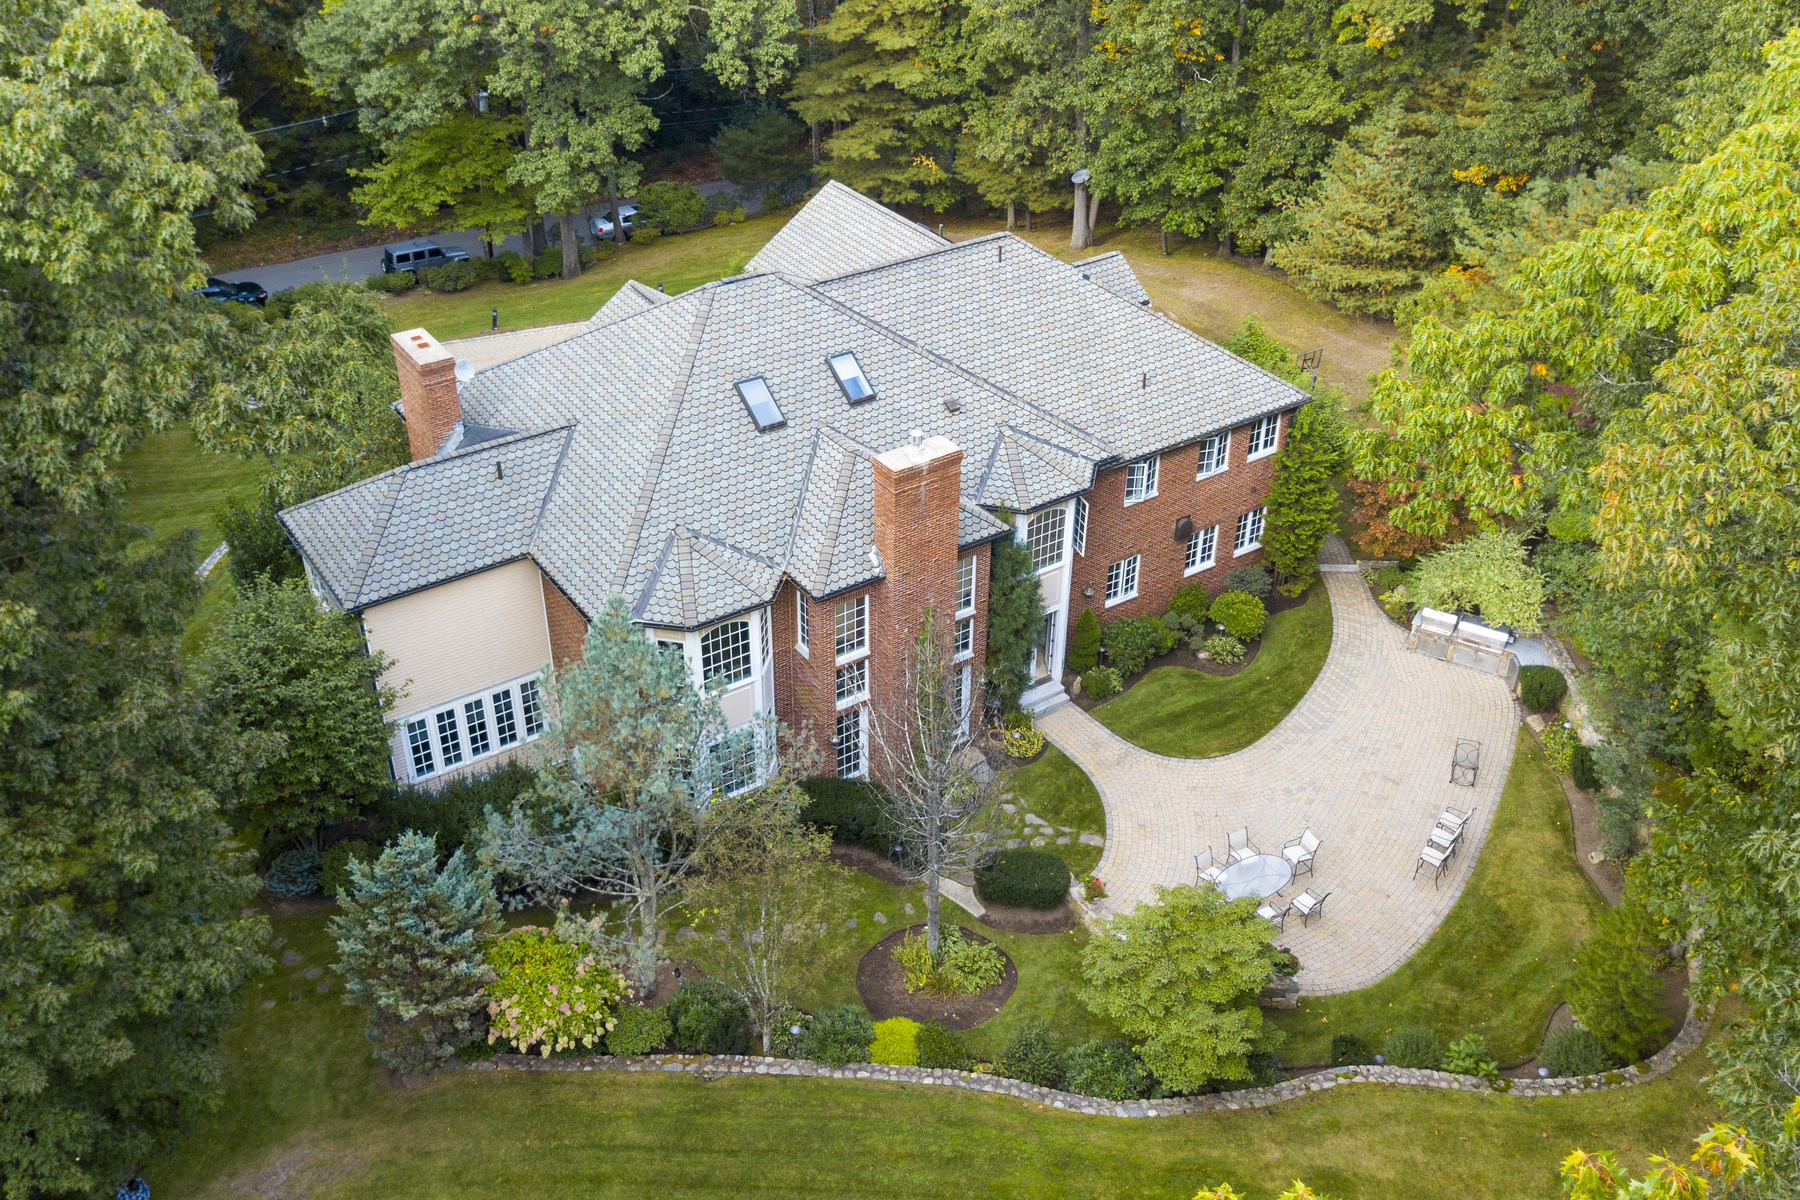 Casa Unifamiliar por un Venta en Bespoke Brick Manor 34 Green Lane, Weston, Massachusetts, 02493 Estados Unidos